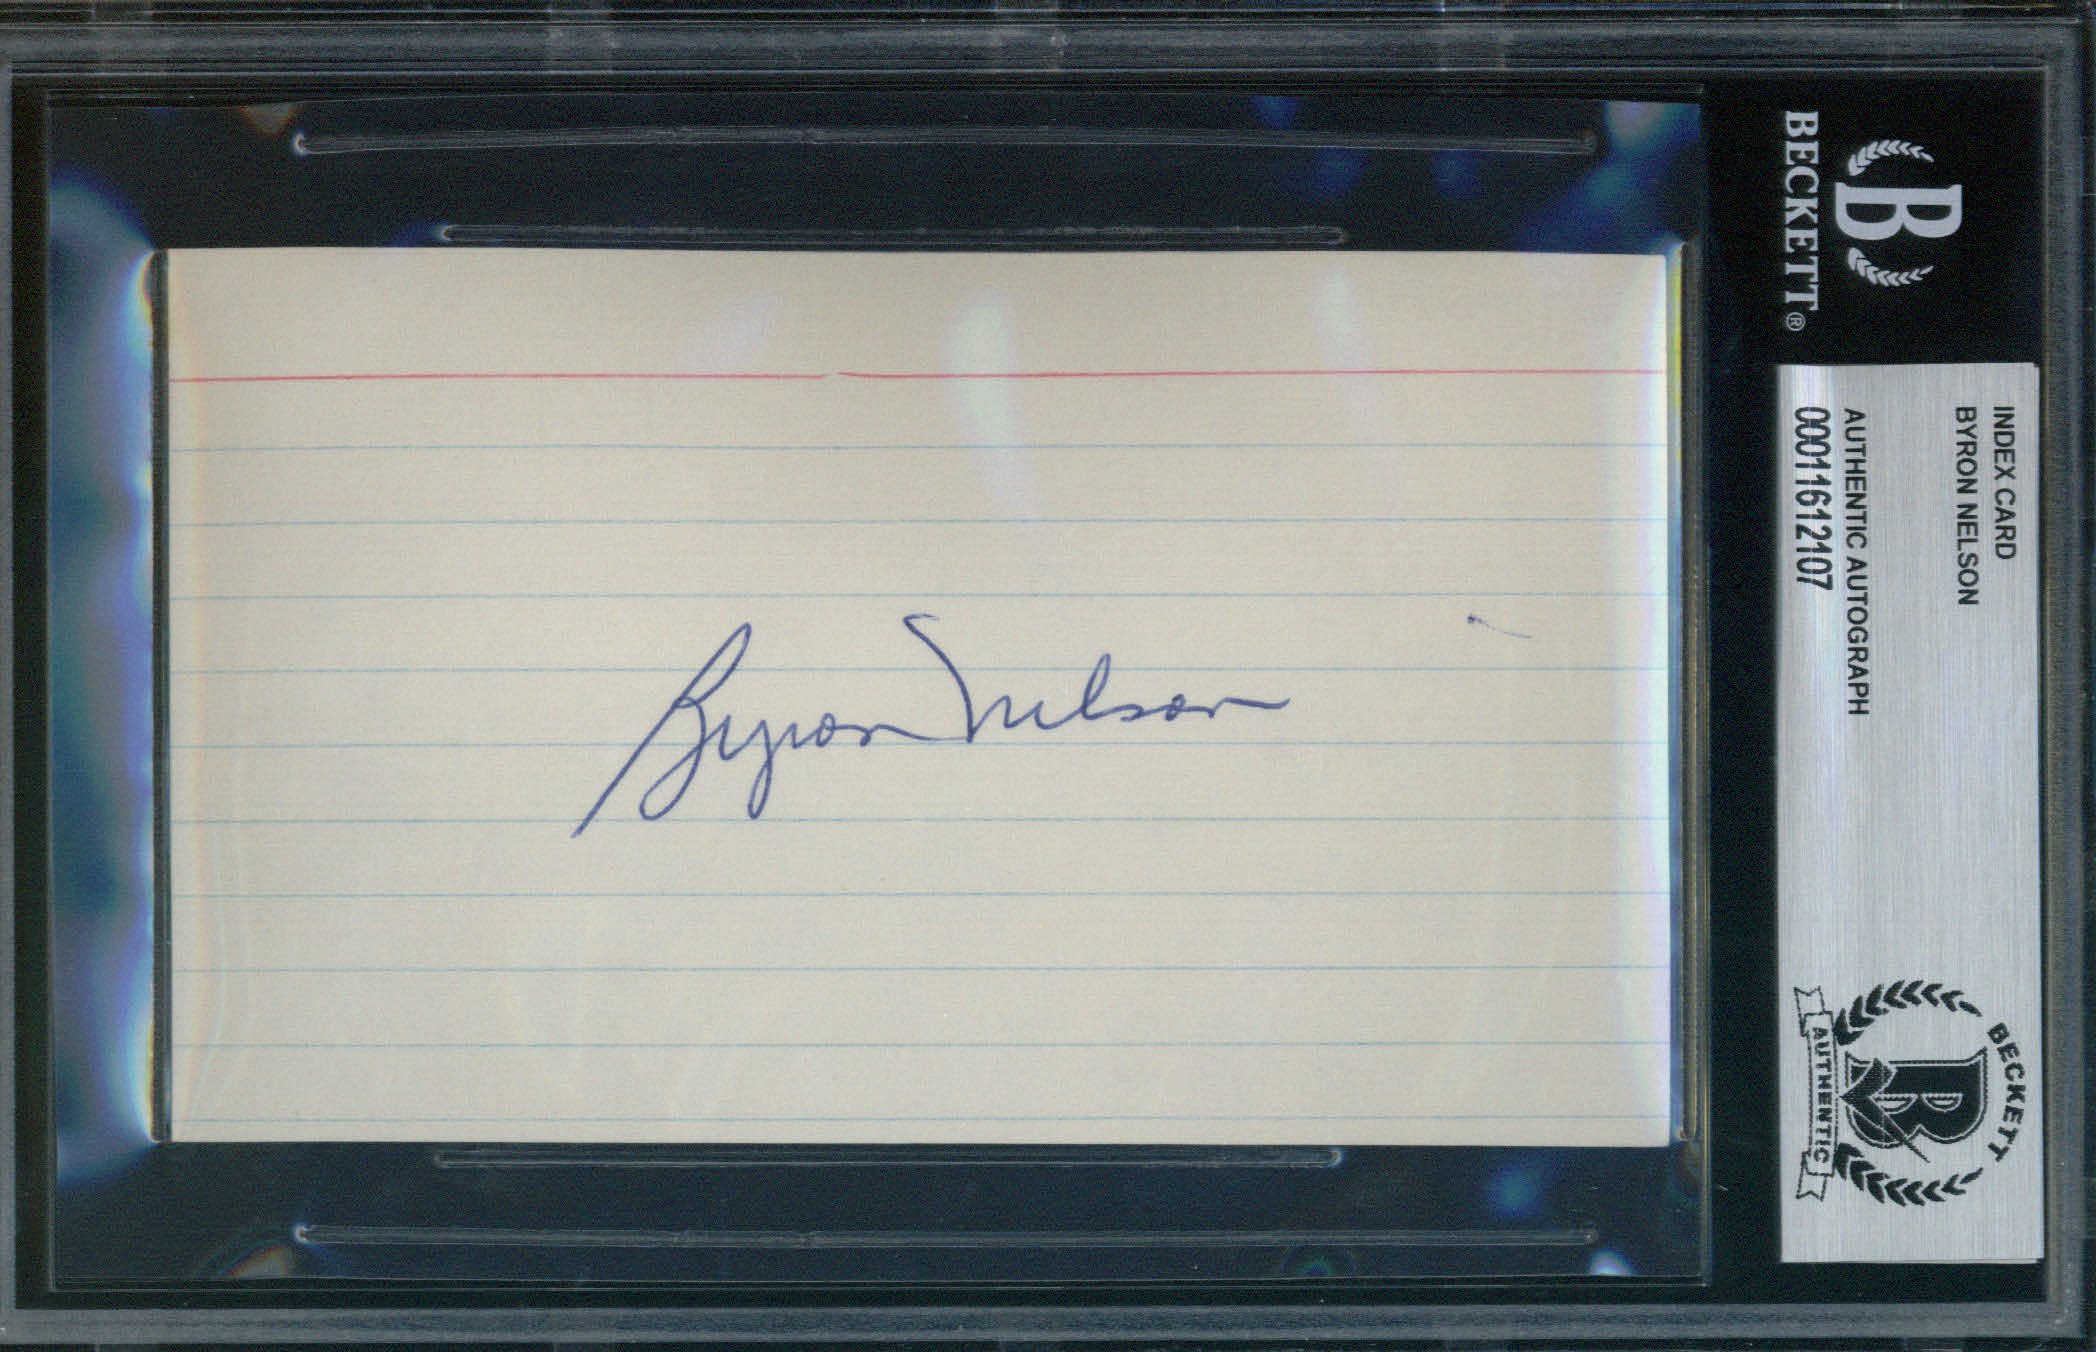 Byron Nelson Autographed Index Card BAS Authenticated